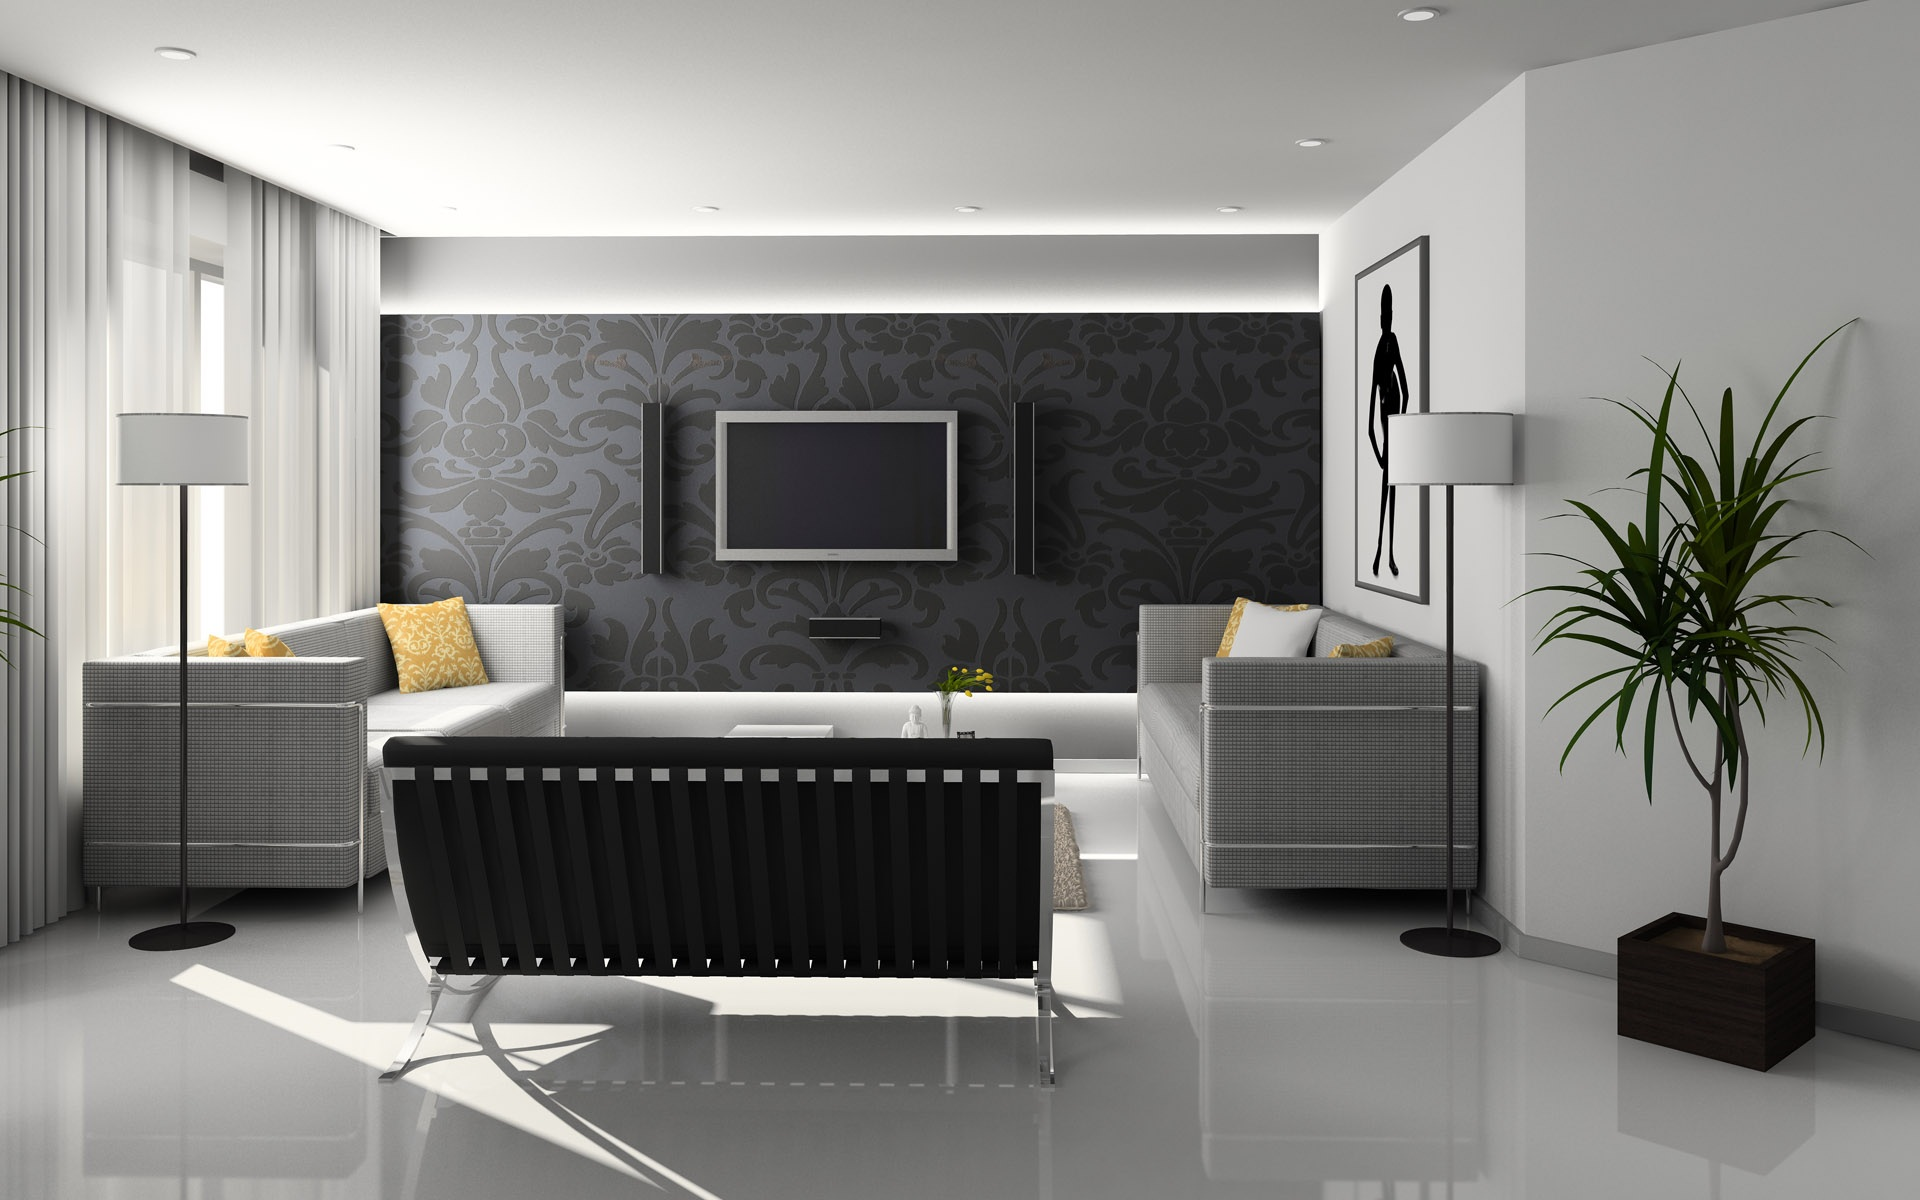 Flat Screen Monitor on Wall Near Sofa Set. Pixabay. Interior Design Of A  House